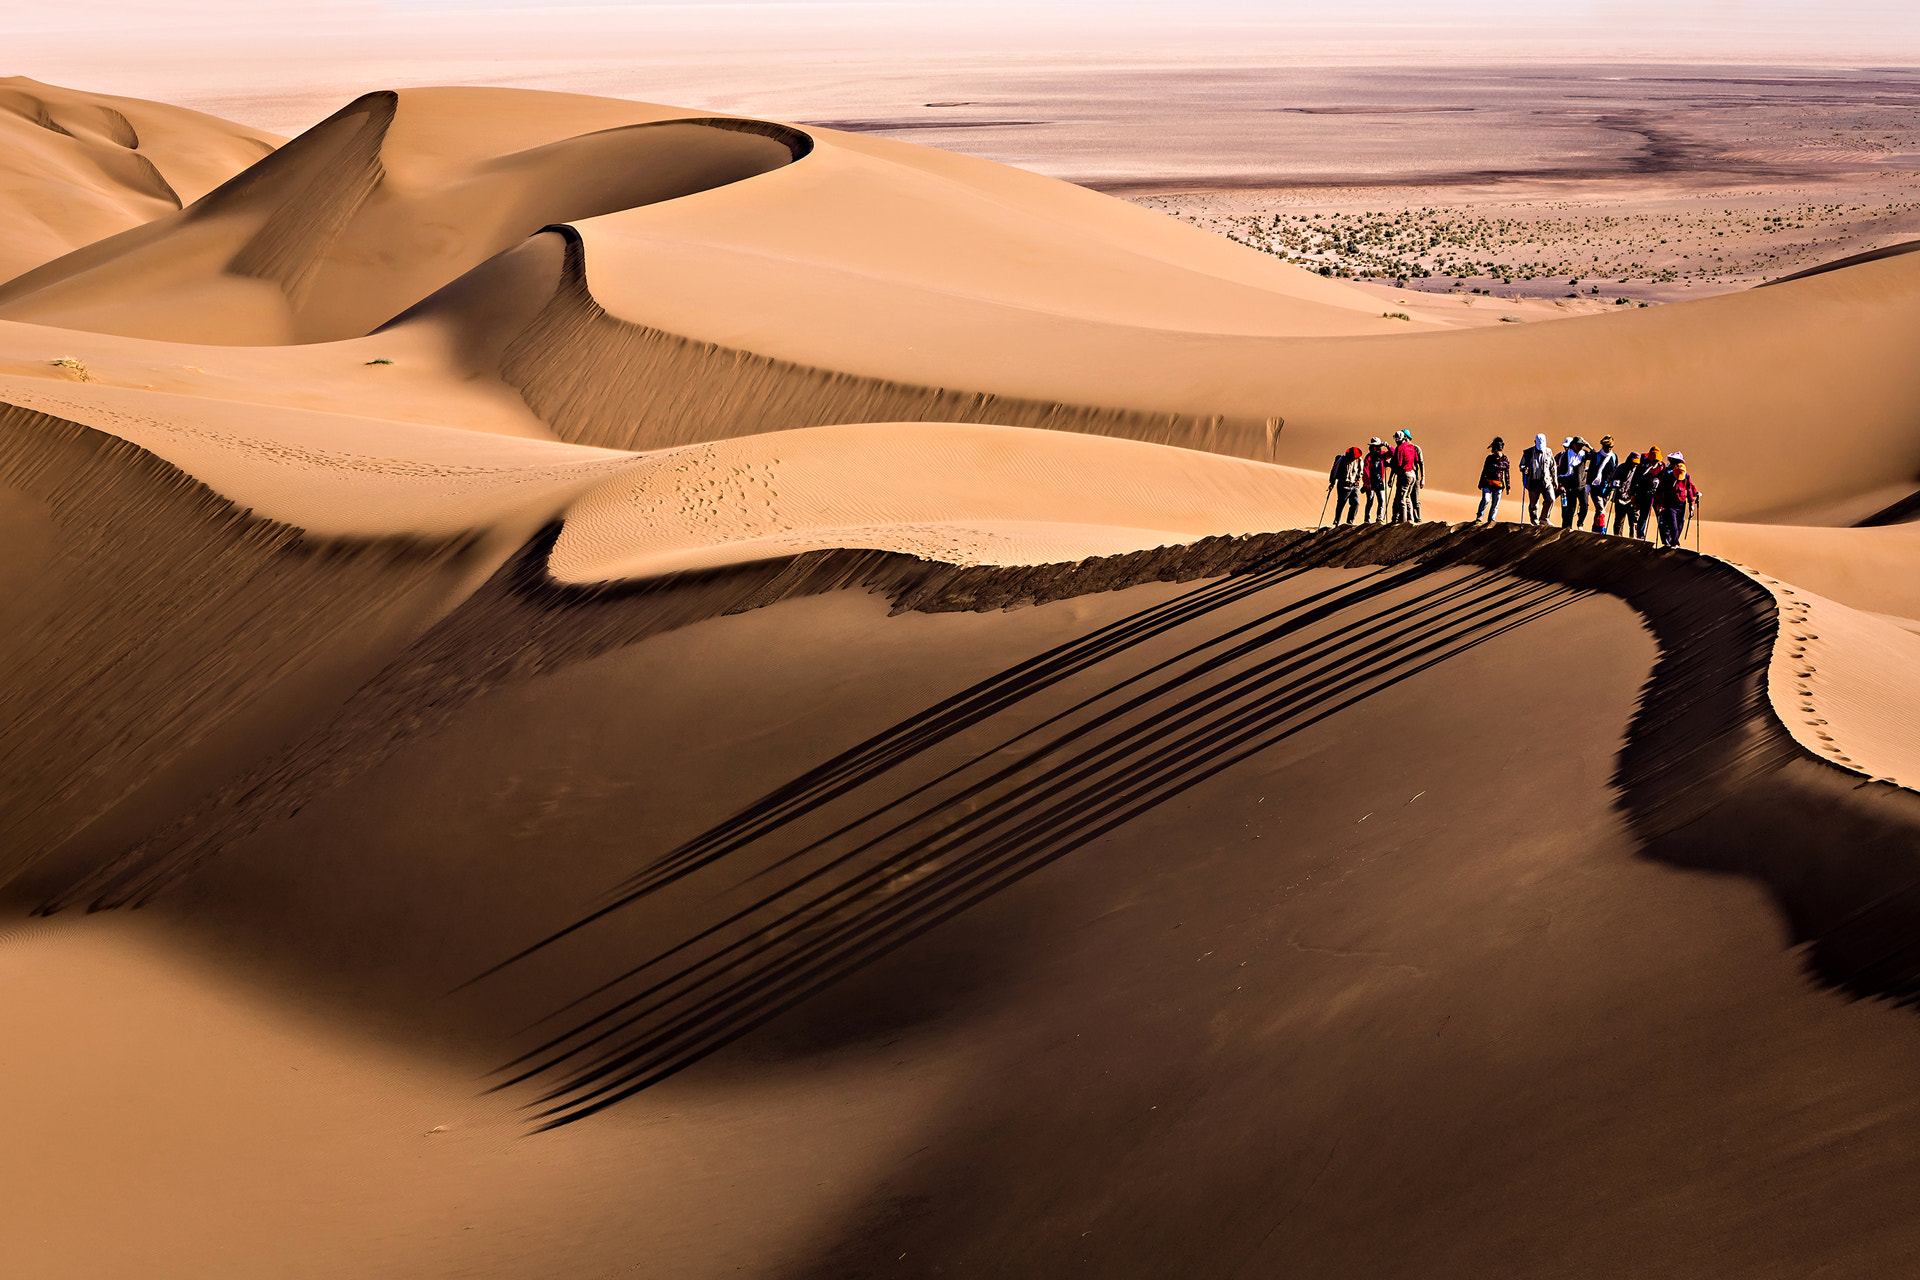 Photograph Sand hike by Mohammadreza Momeni on 500px